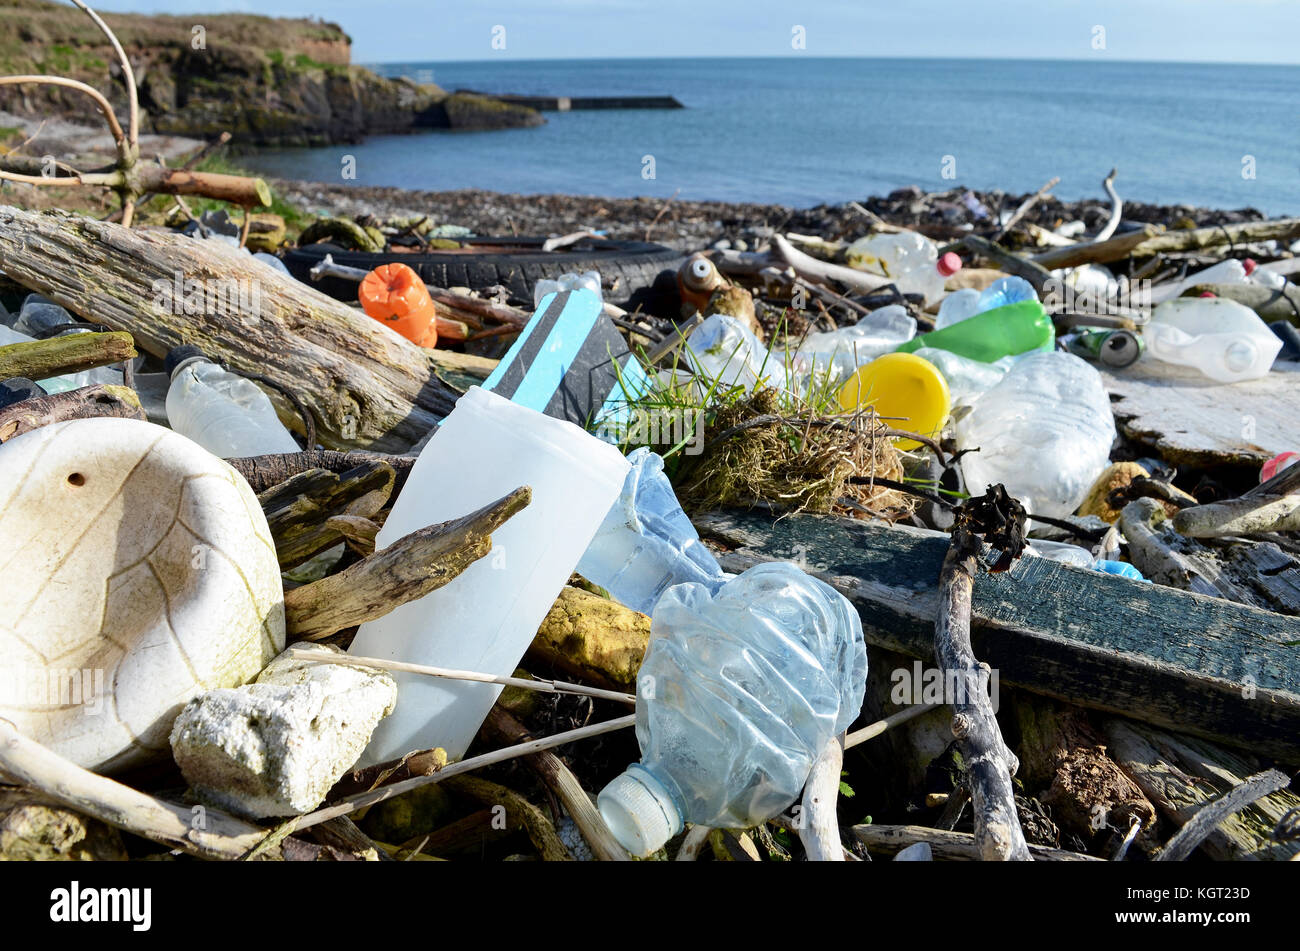 litter washed up on a beach in county cork, ireland. - Stock Image